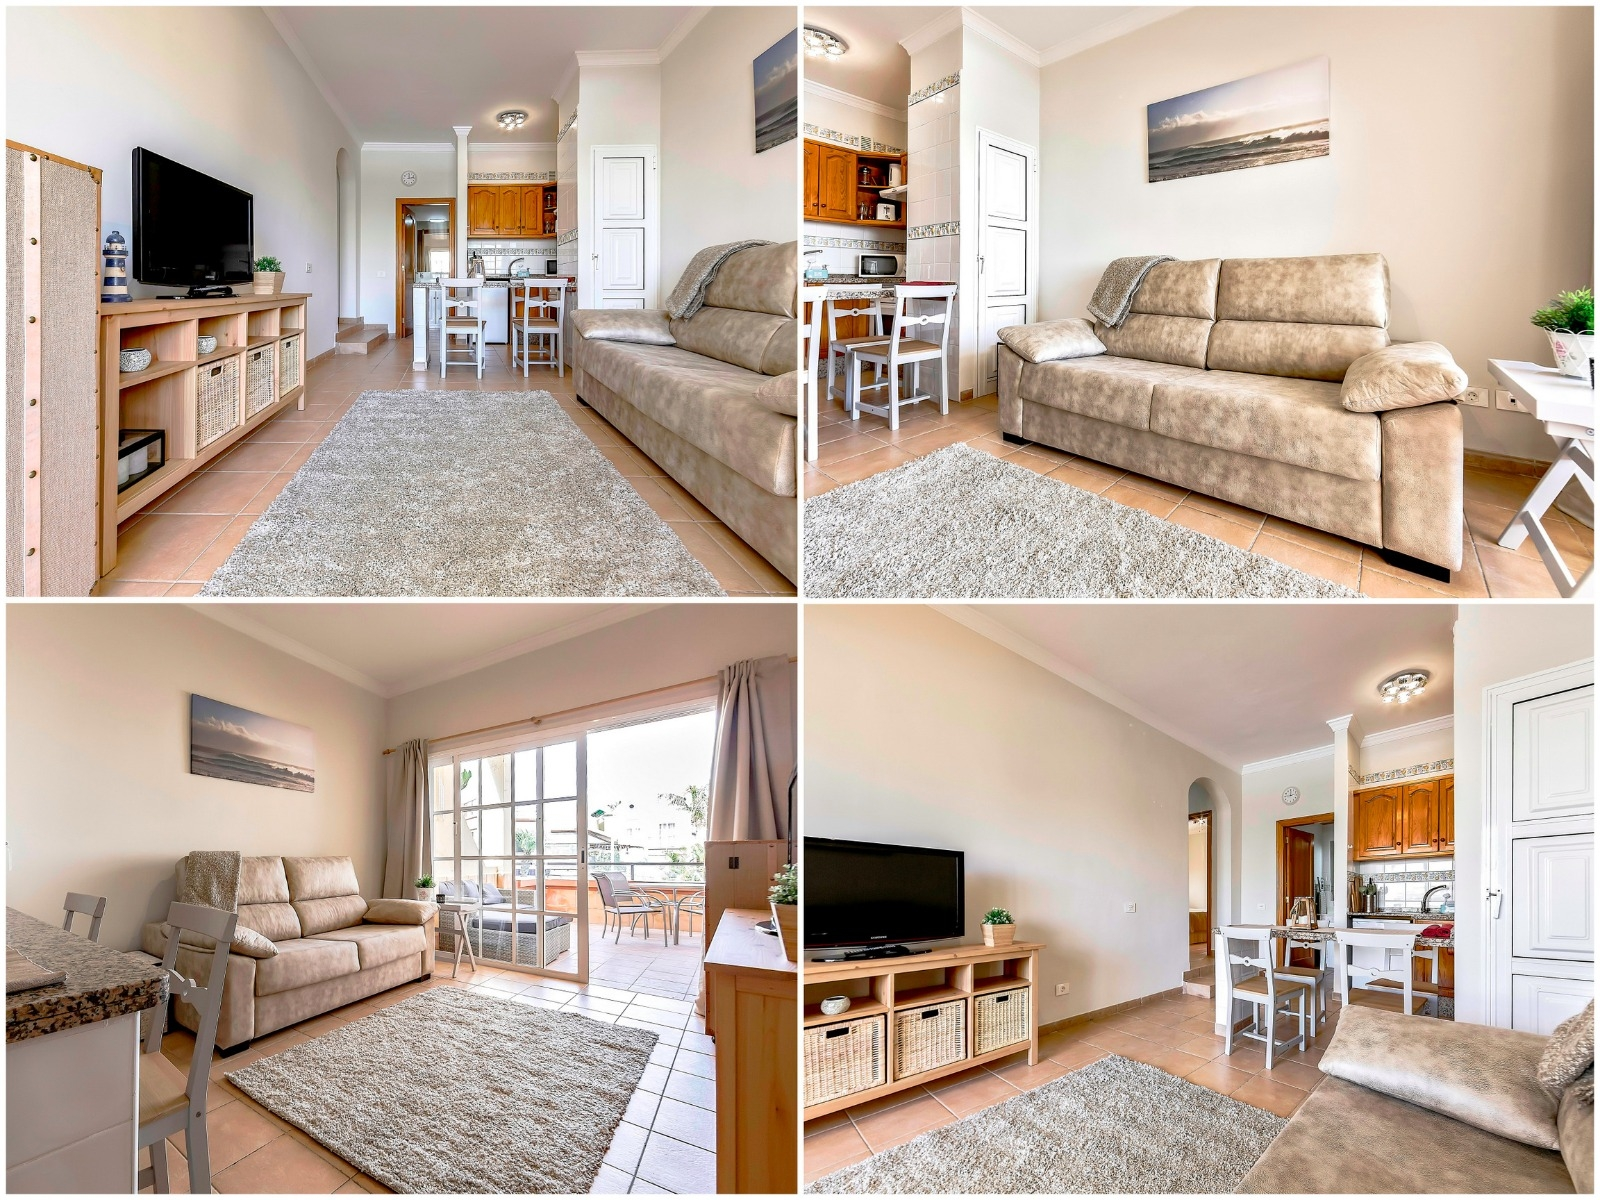 Properties for Sale in Tenerife, Canary Islands, Spain | SylkWayStar Real Estate. 1 bedroom apartment Yucca Park. Image-22571